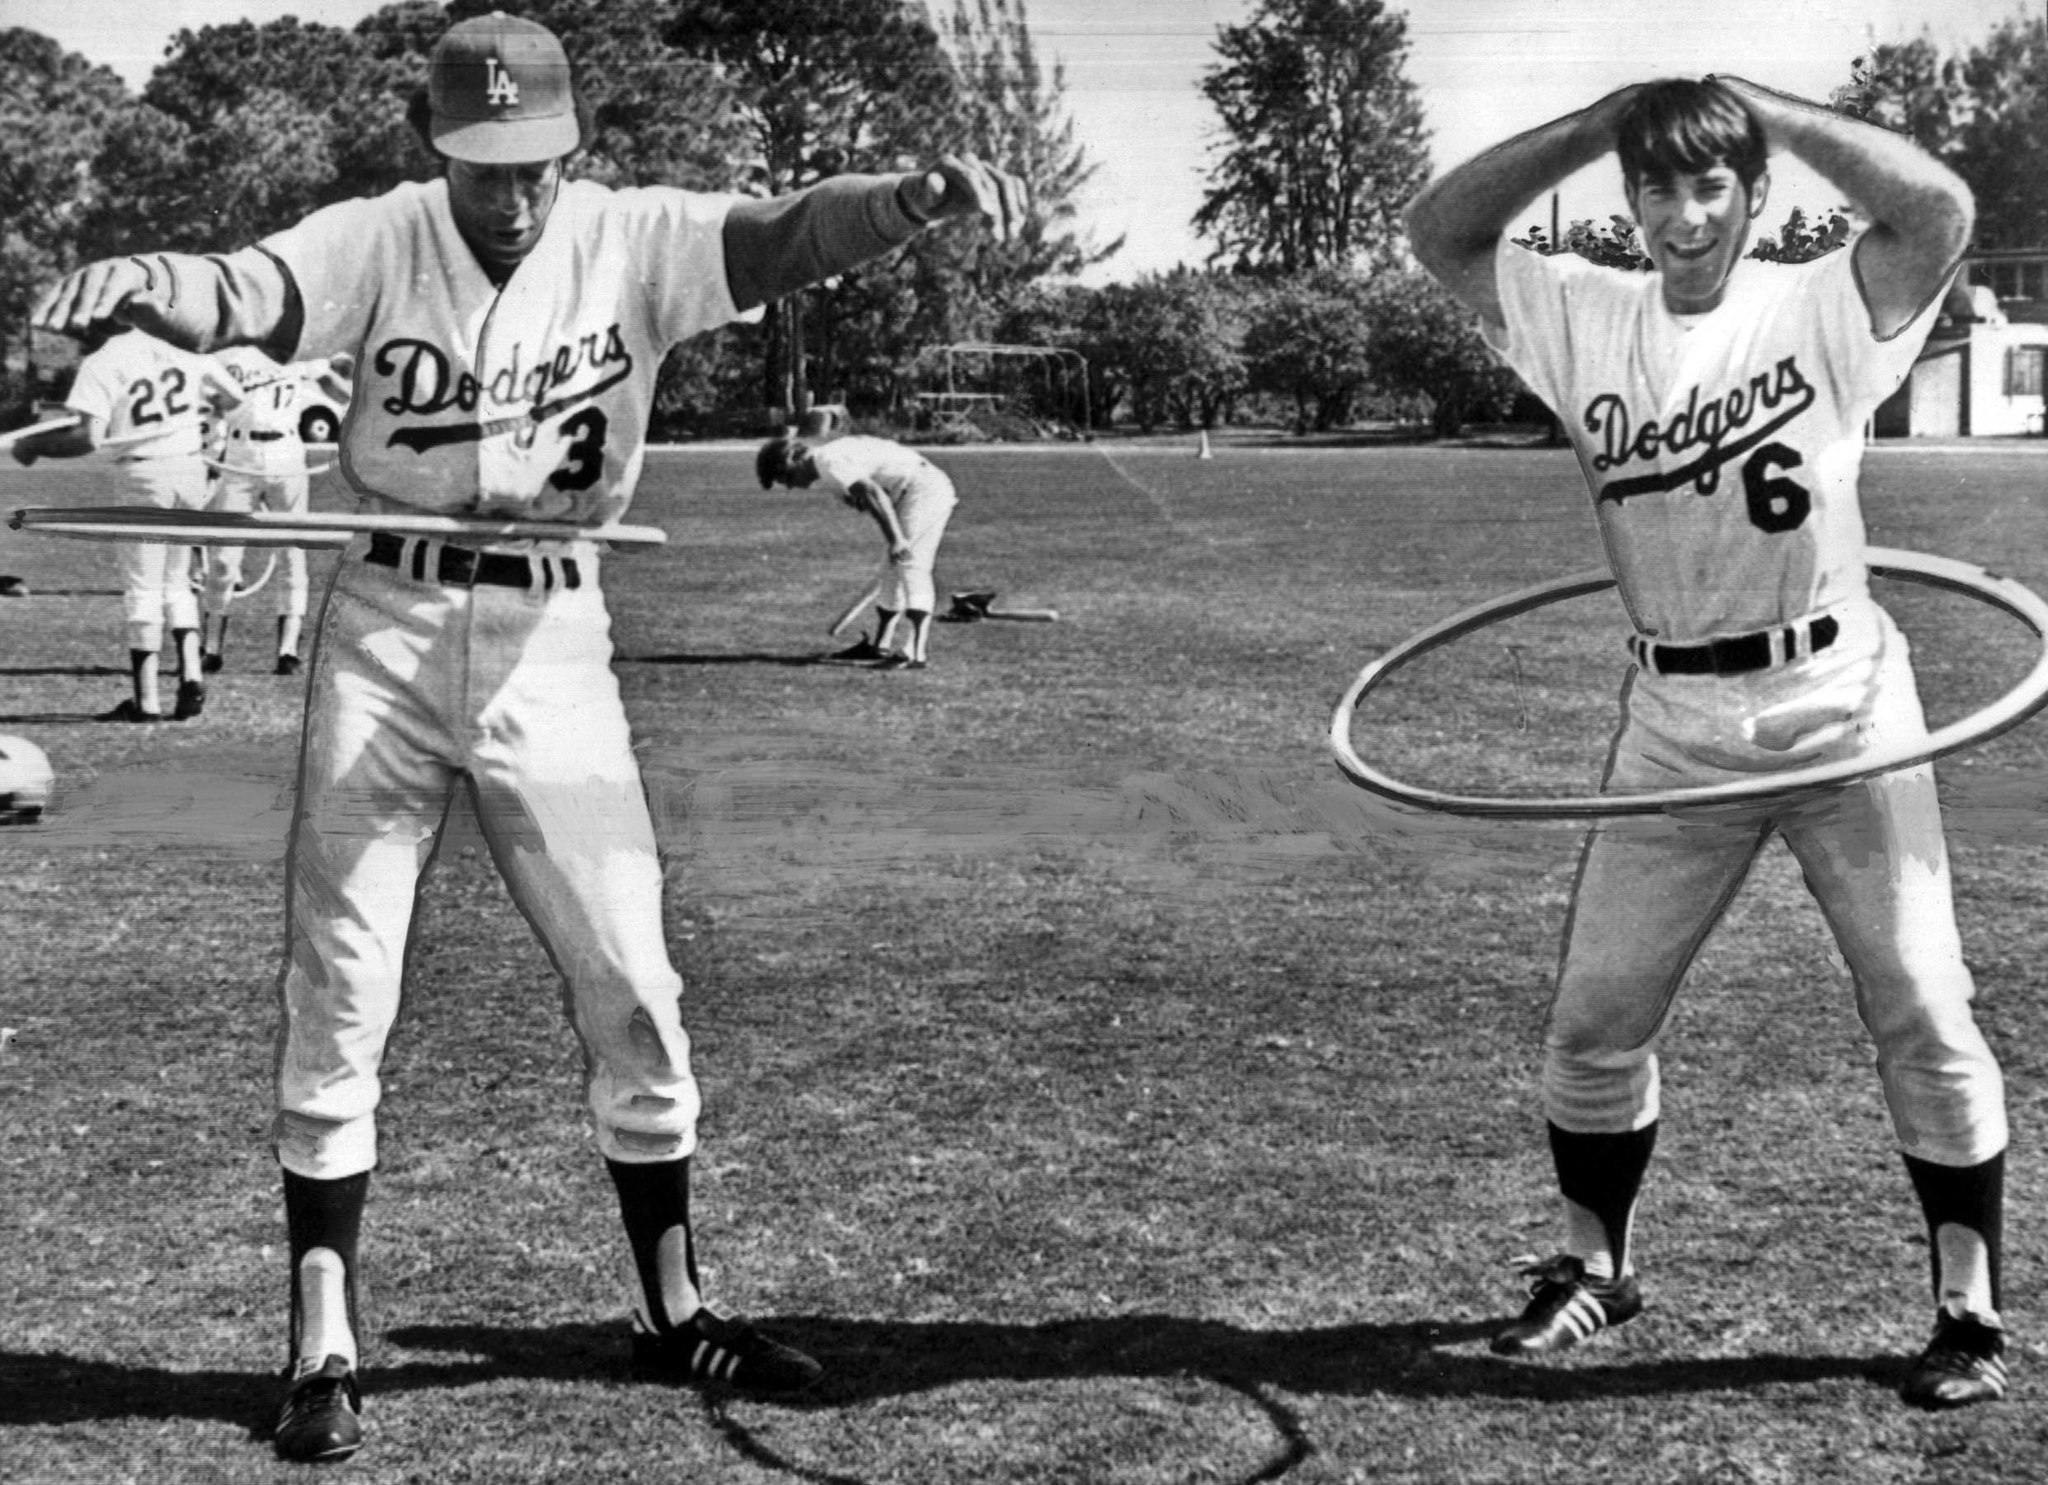 March 7, 1973: Los Angeles Dodgers Willie Davis, left, and Steve Garvey use hula hoops during an exe